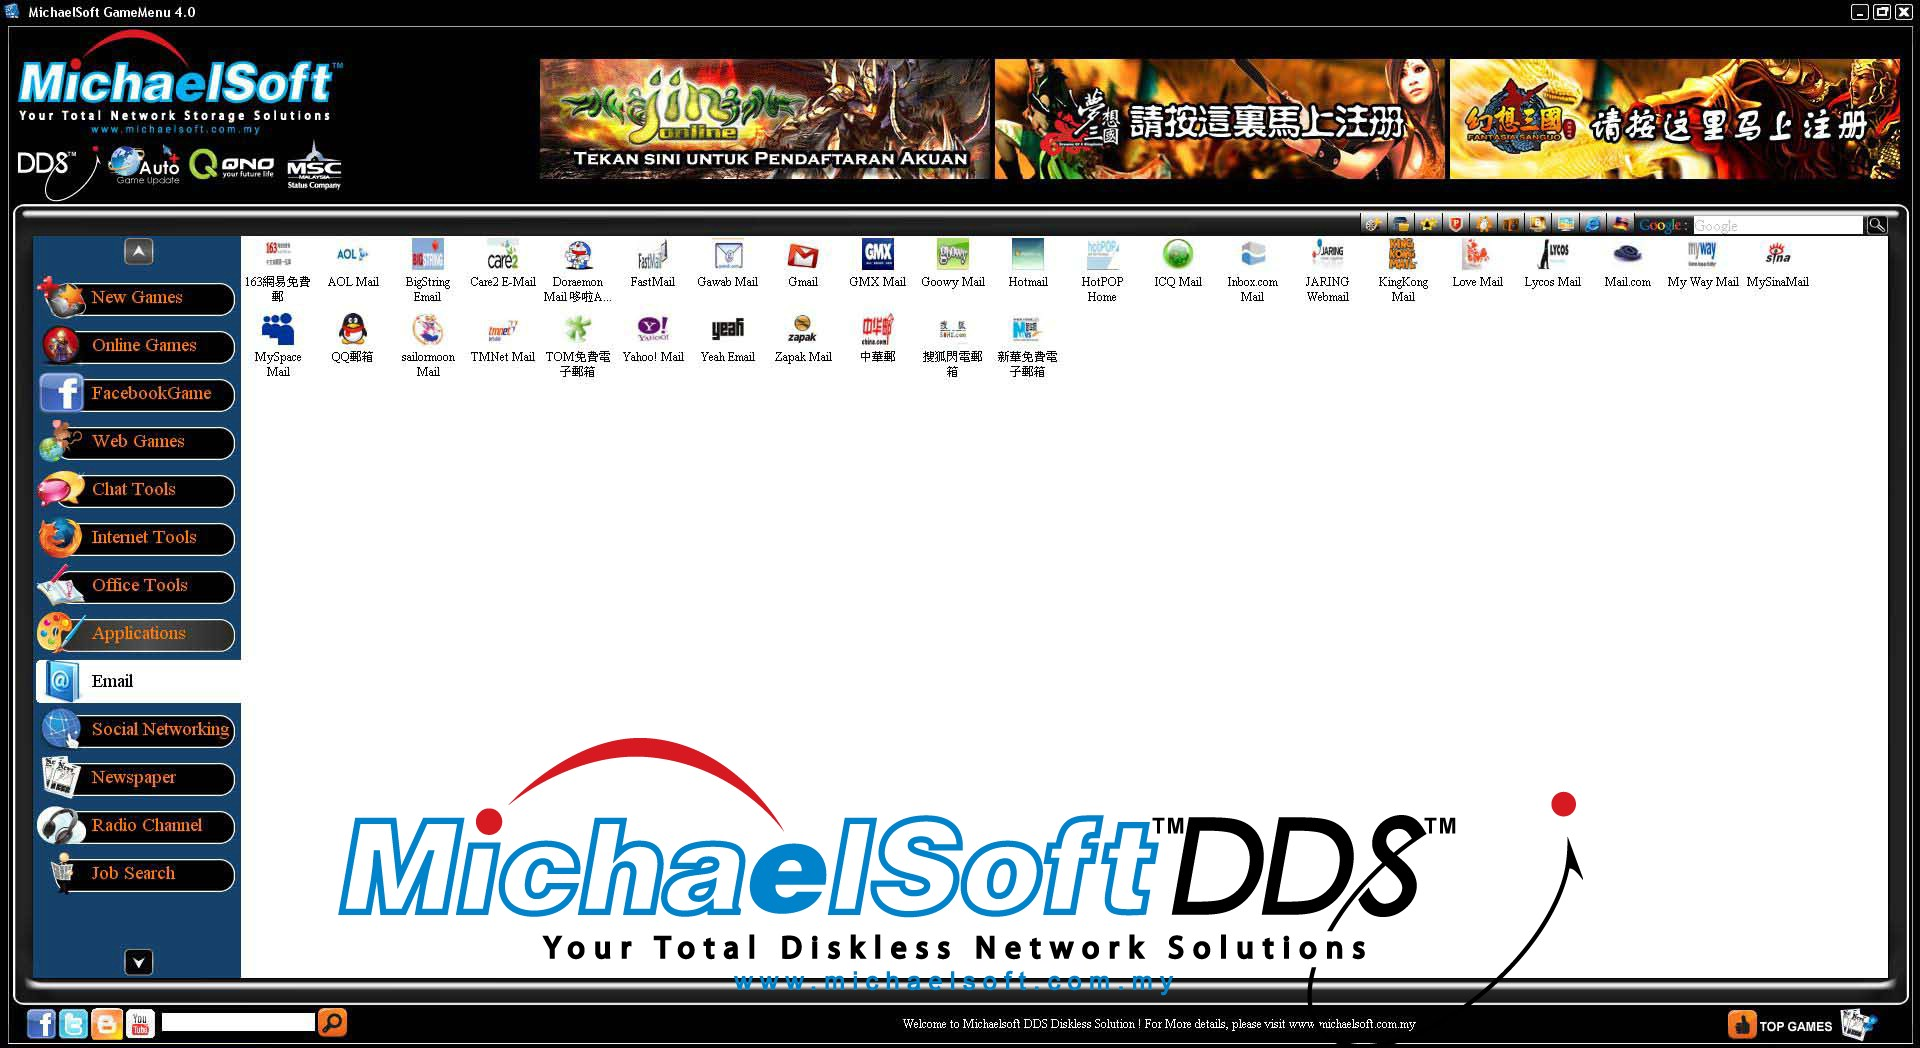 Michaelsoft DDS Diskless Solution , Cloud Computing , Diskless Cybercafe , Diskless System , Michaelsoft DDS Cybercafe Game Menu (Email)-Also known as electronic mail, it is - kind of exchange of information by electronic means of communication.